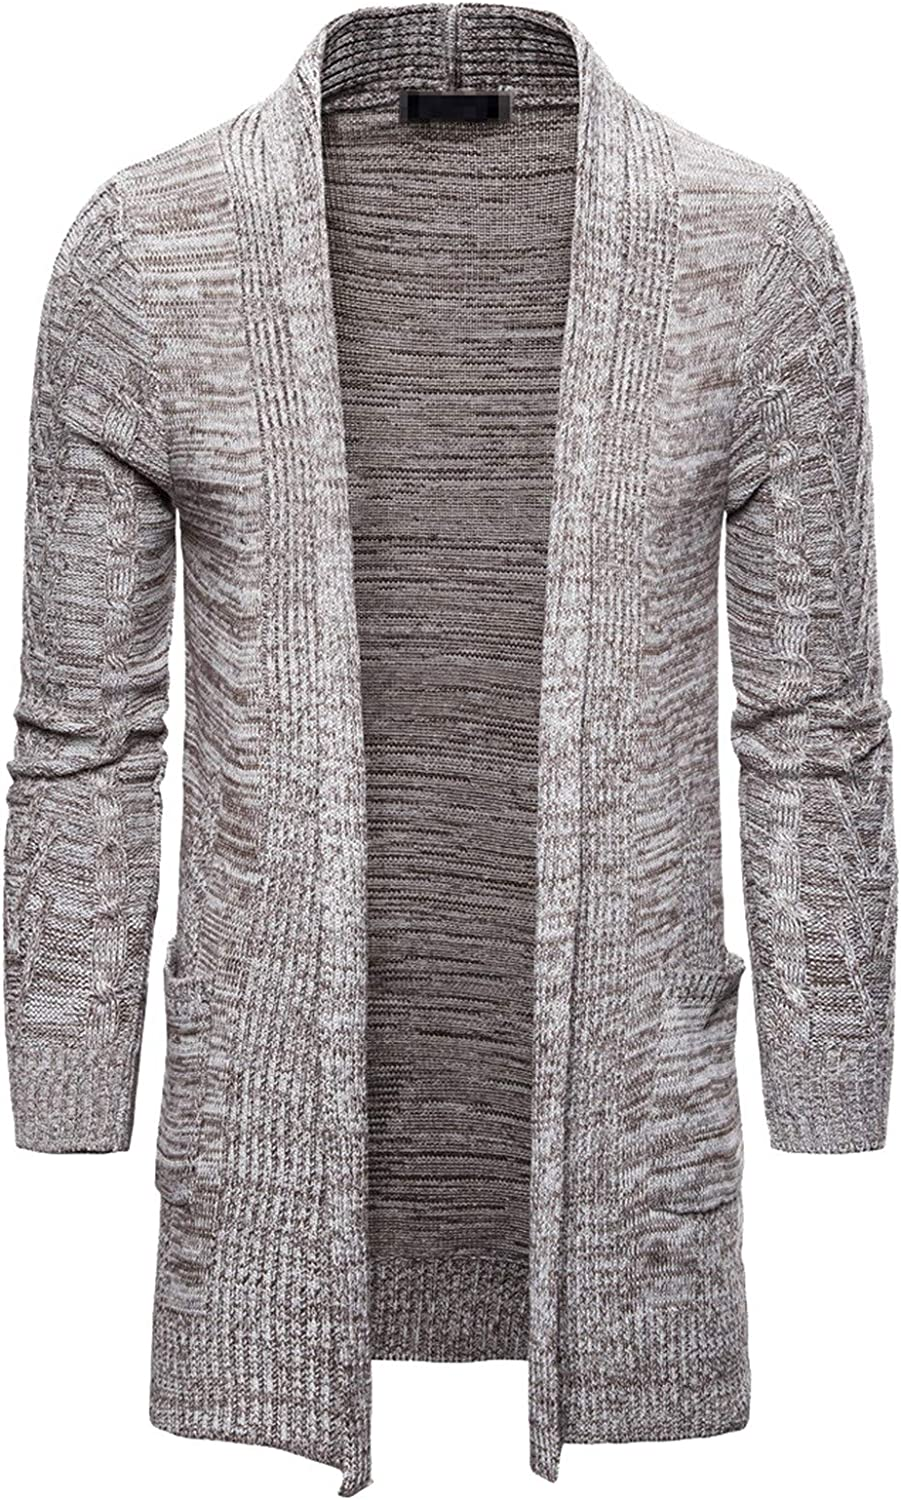 Men's Wool Cardigan Solid Color Autumn Winter Thick Slim Fit Long Jacket Cotton Knitted Sweaters